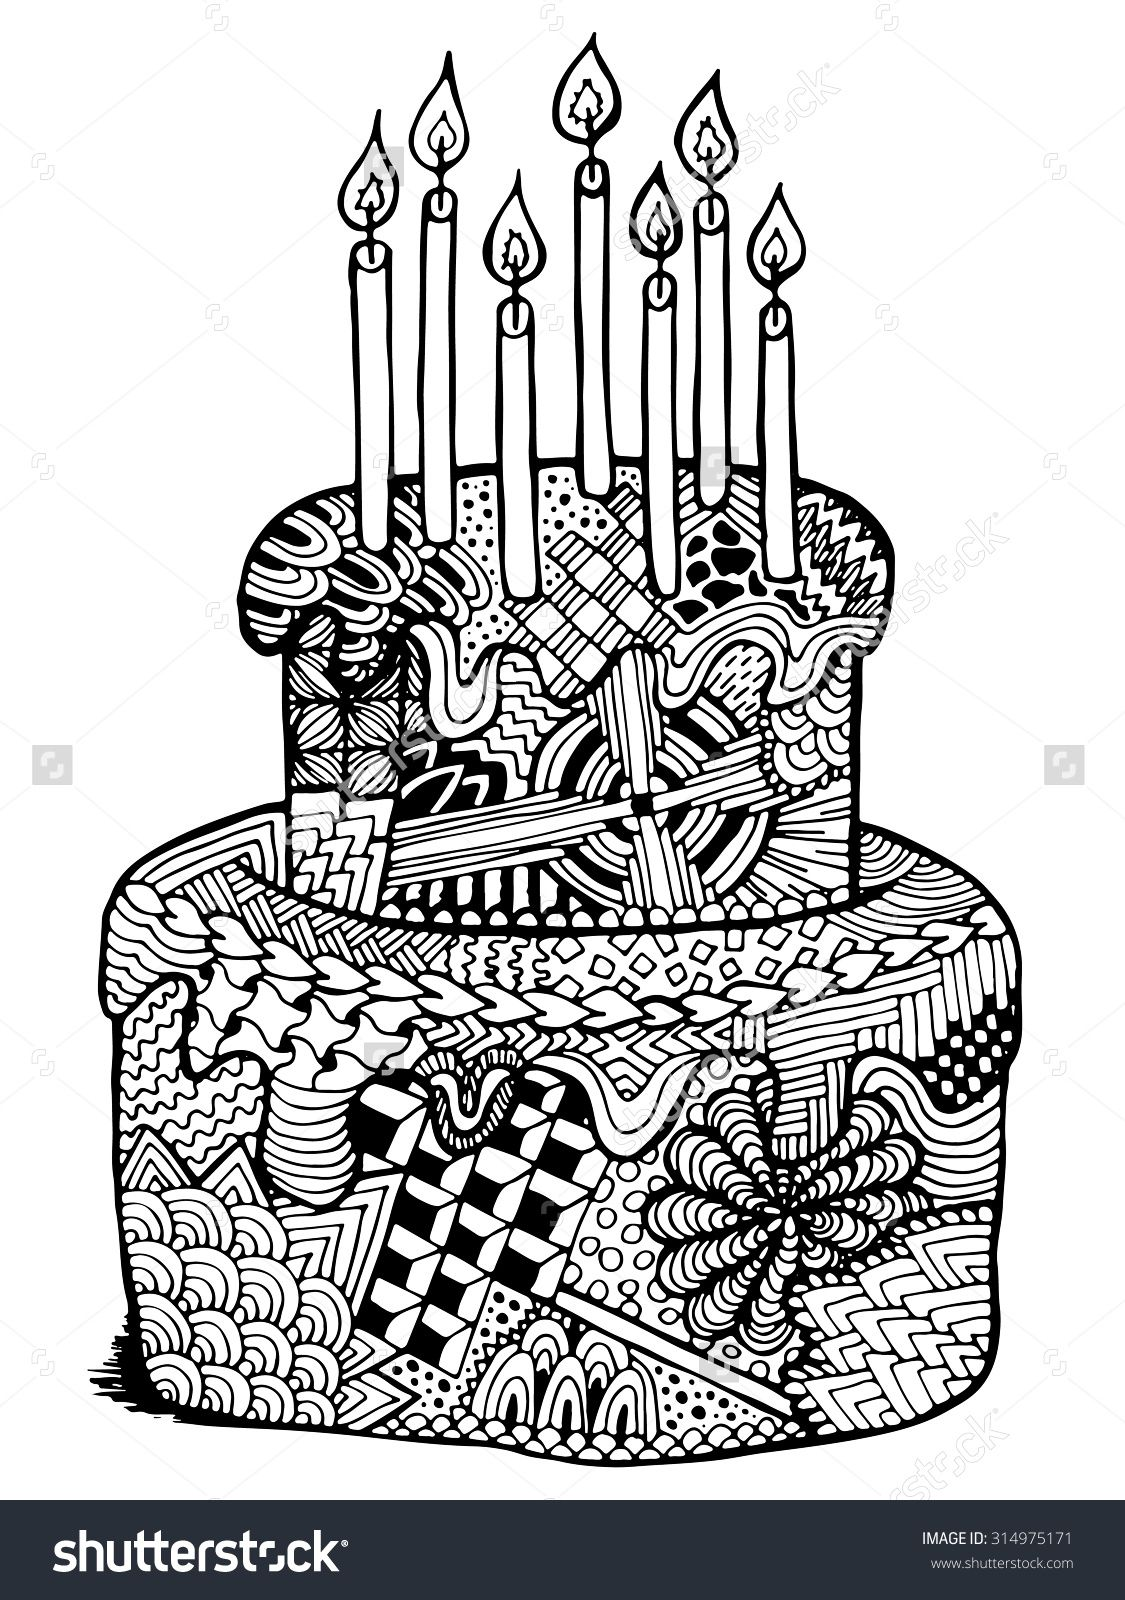 birthday cake zentangle illustration hand drawn zenart cake with